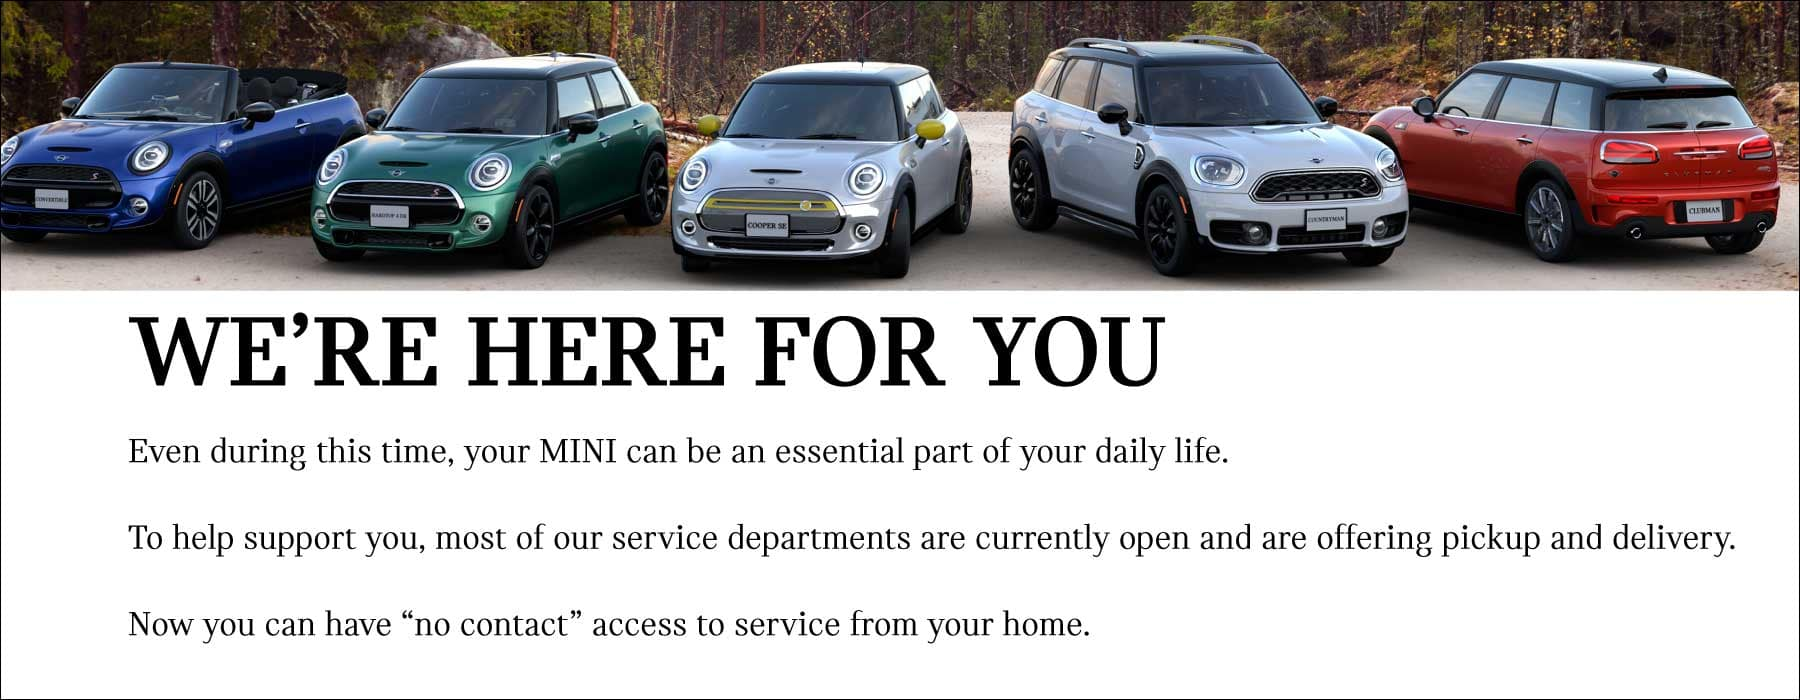 """WE'RE HERE FOR YOU. Even during this time, your MINI can be an essential part of your daily life. To help support you, most of our service departments are currently open and are offering pickup and delivery. Now you can have """"no contact"""" access to service from your home."""